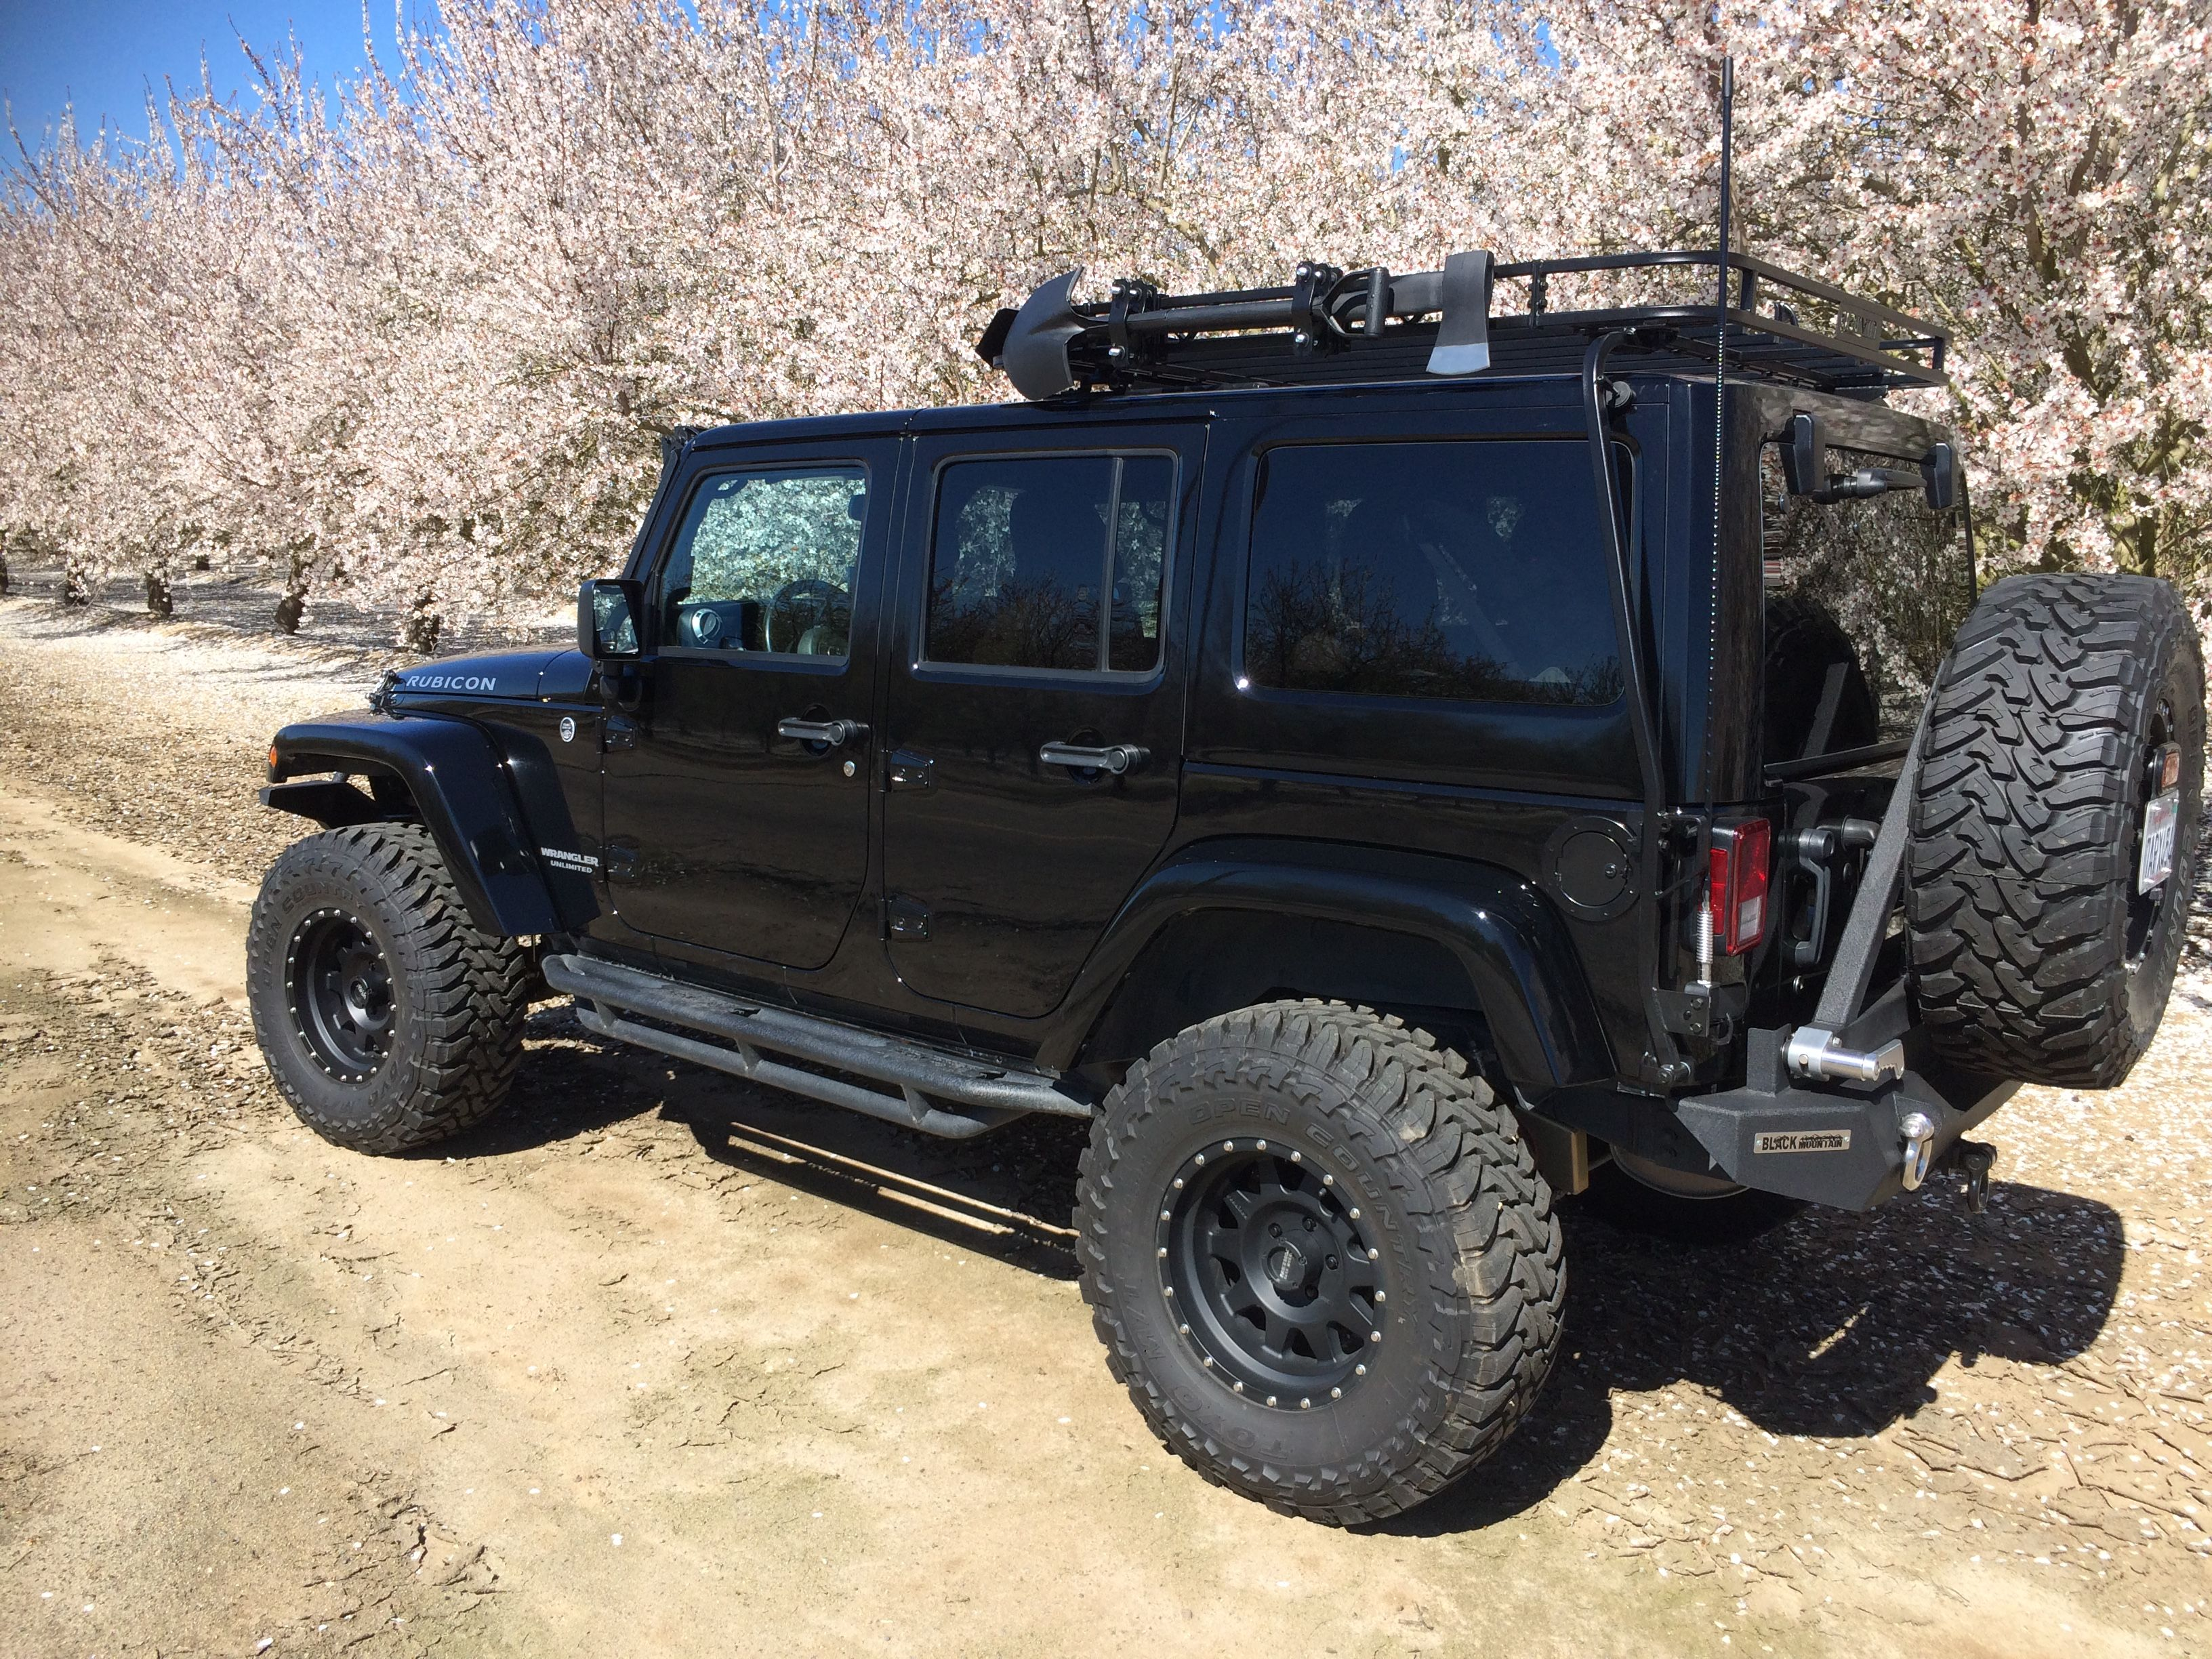 Jeep Wrangler Rubicon Black Mountain Bumpers Garvin Roof Rack